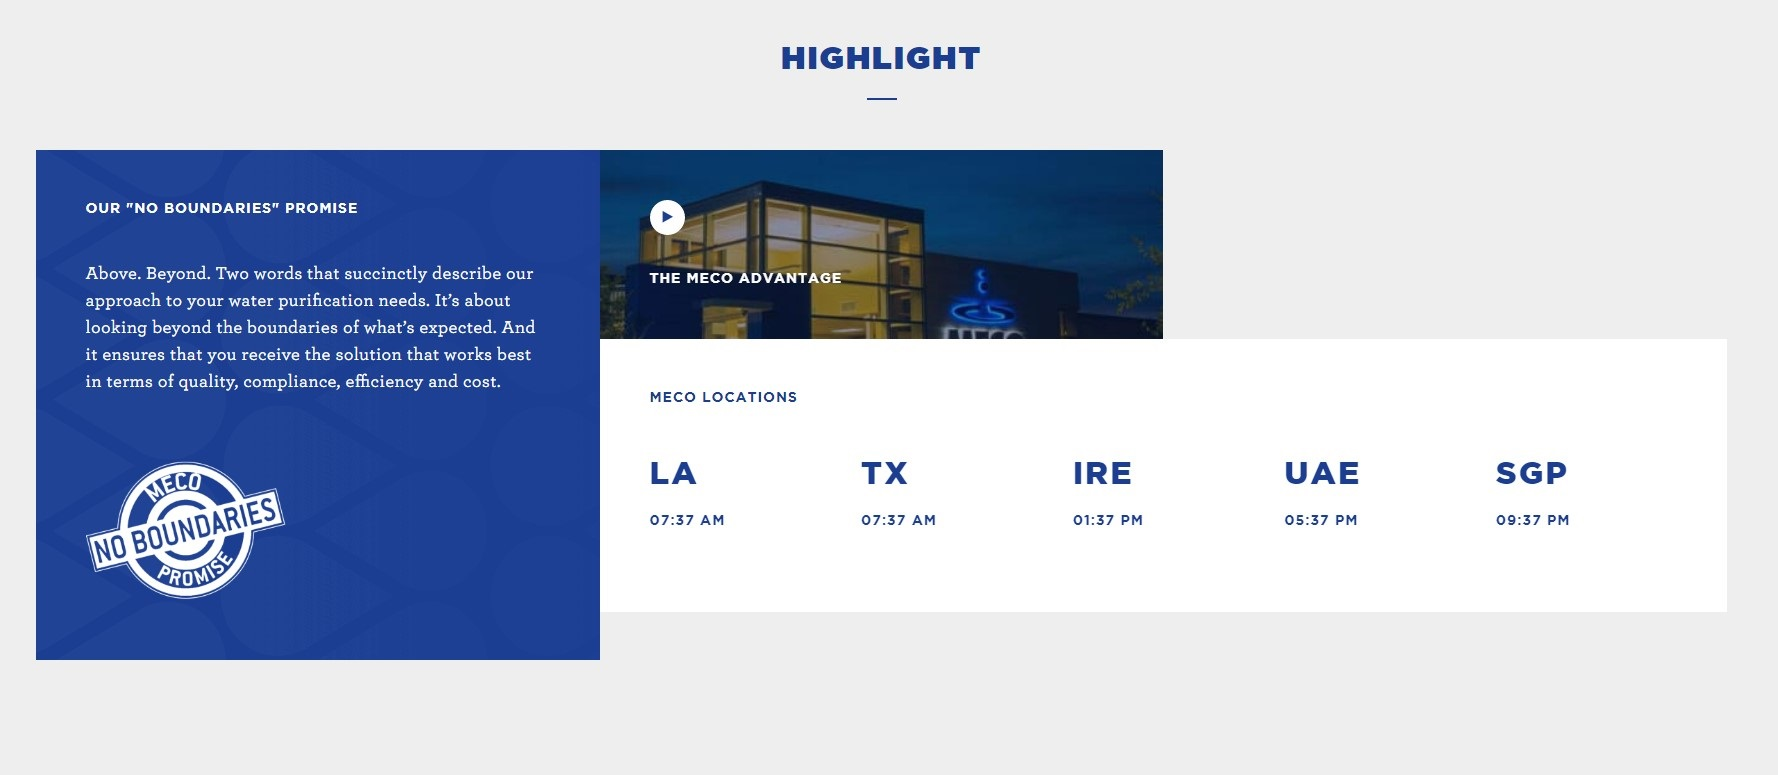 MECO use their website to highlight different office locations